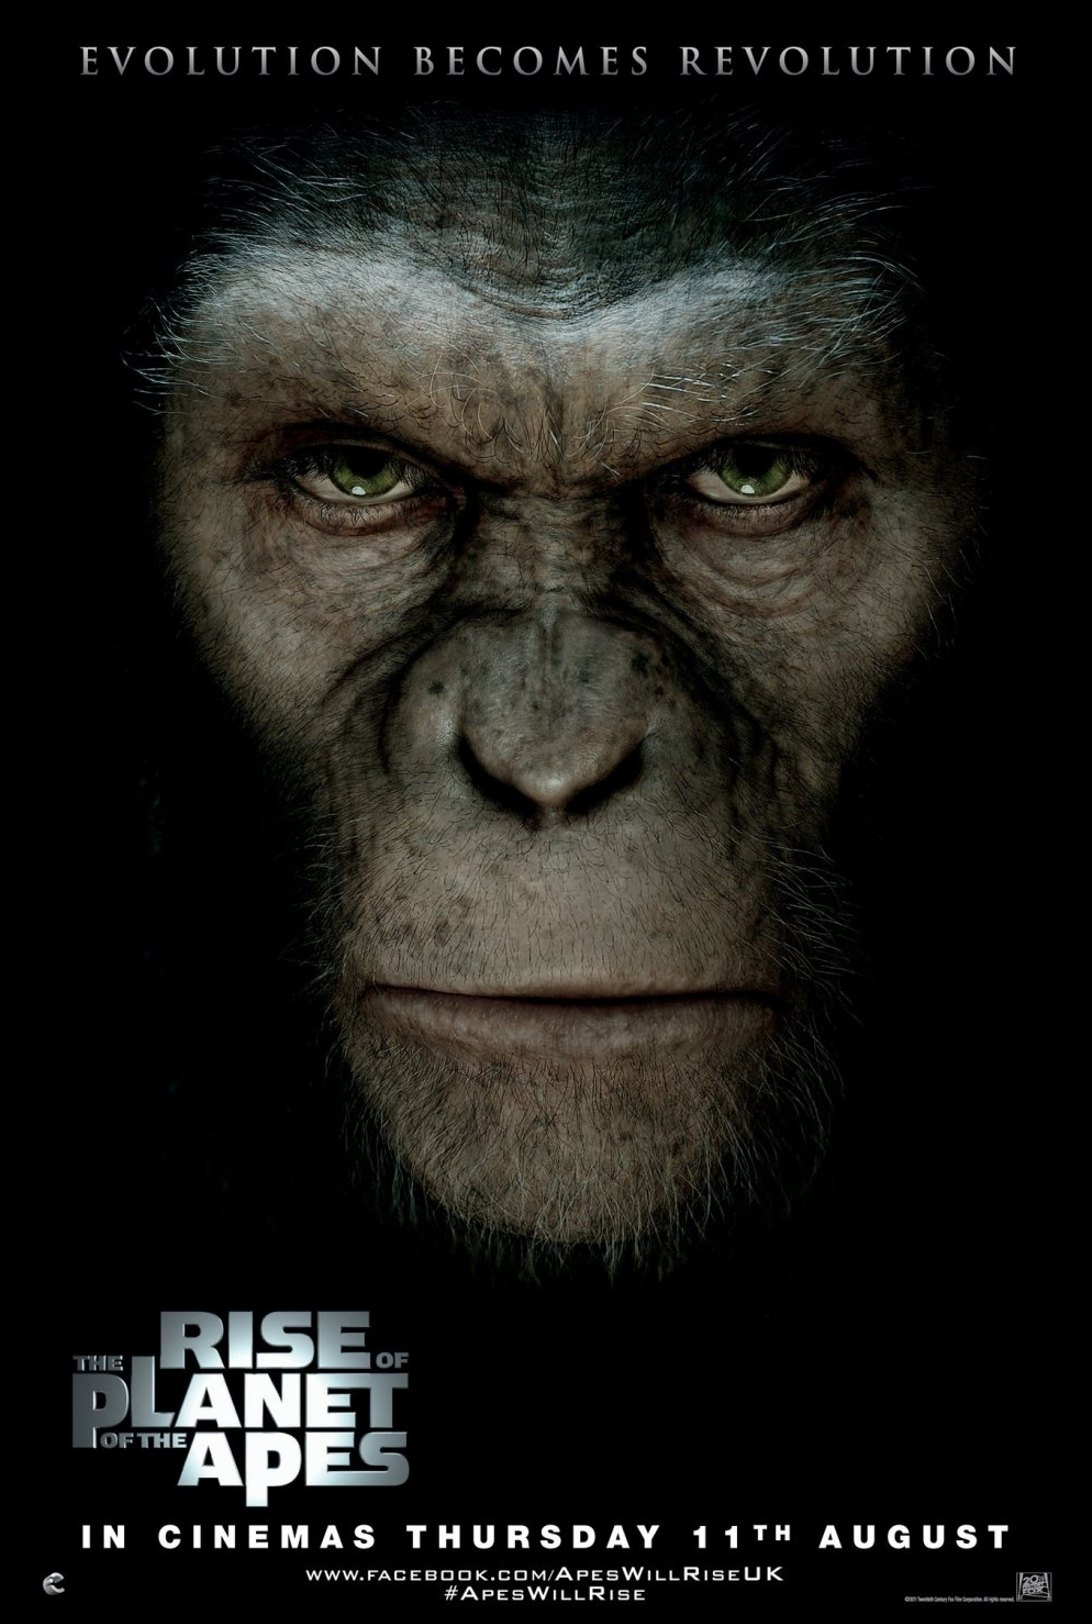 'Rise of the Planet of the Apes' tops weekend box office with $54m